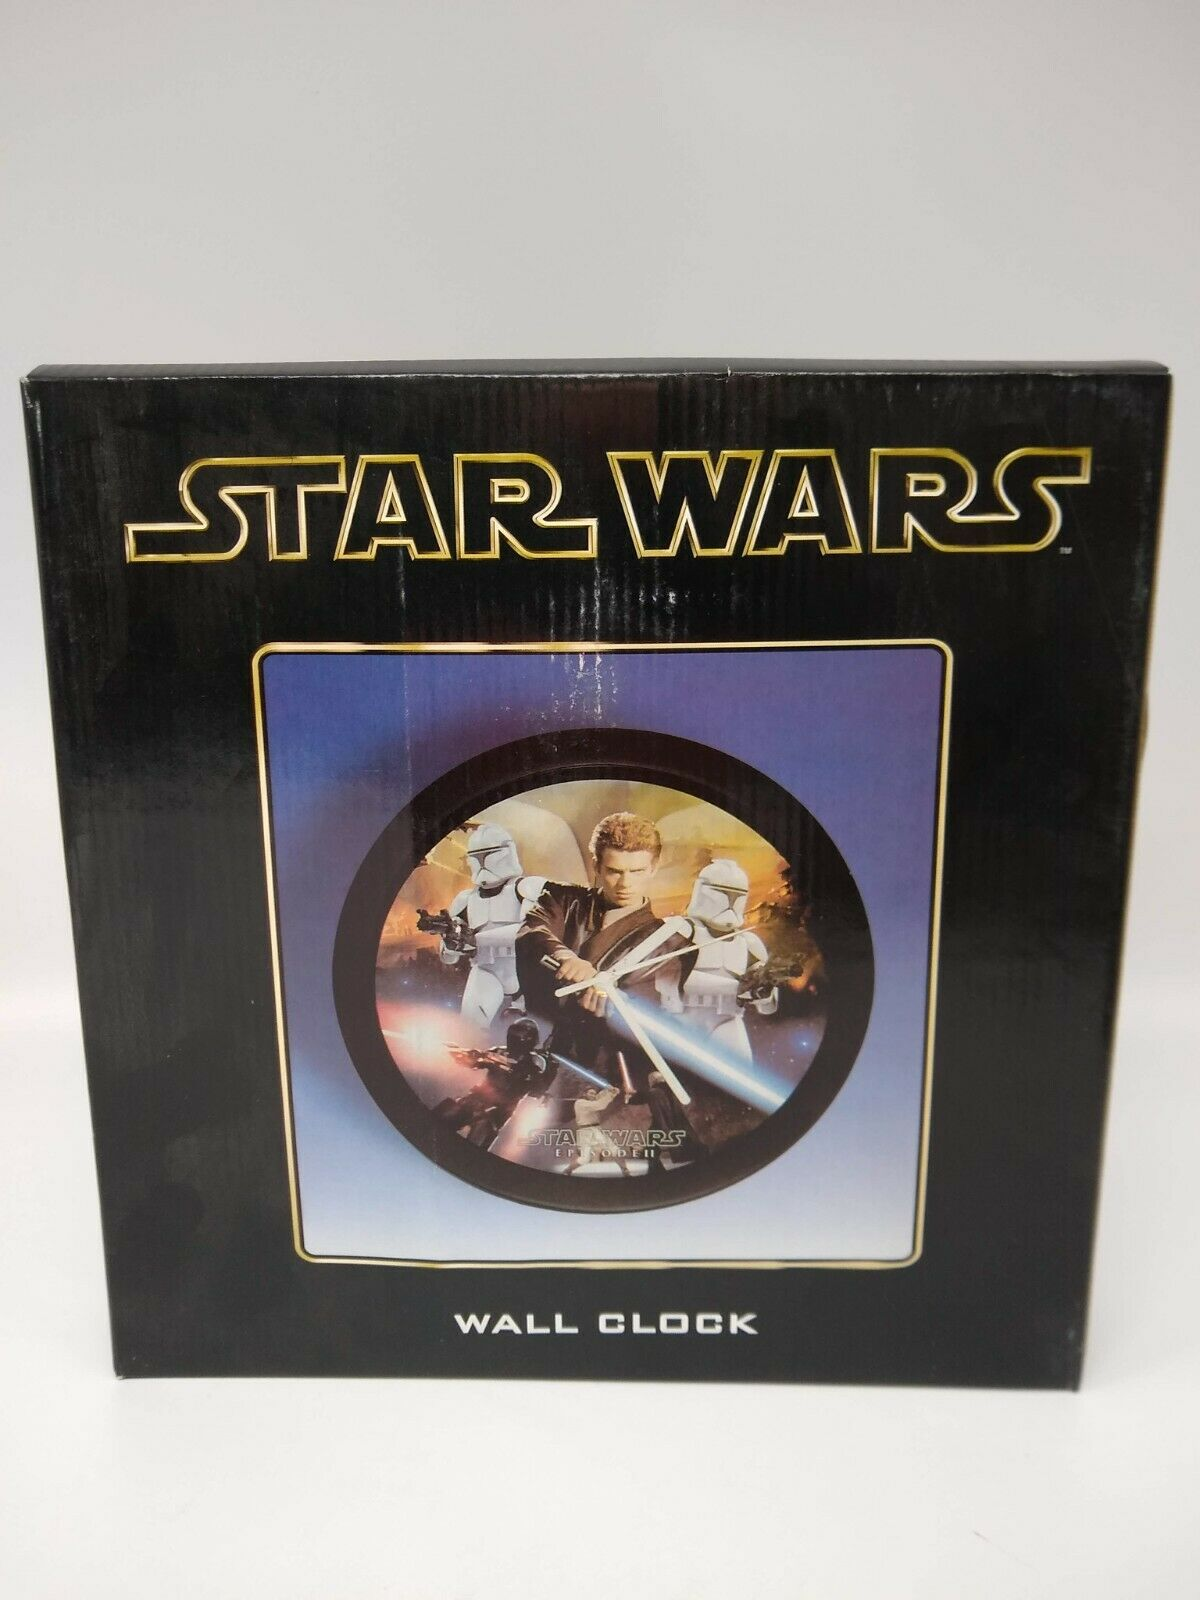 Star Wars Episode 2 Wall Clock Featuring Anakin and Clone Troopers - Sealed